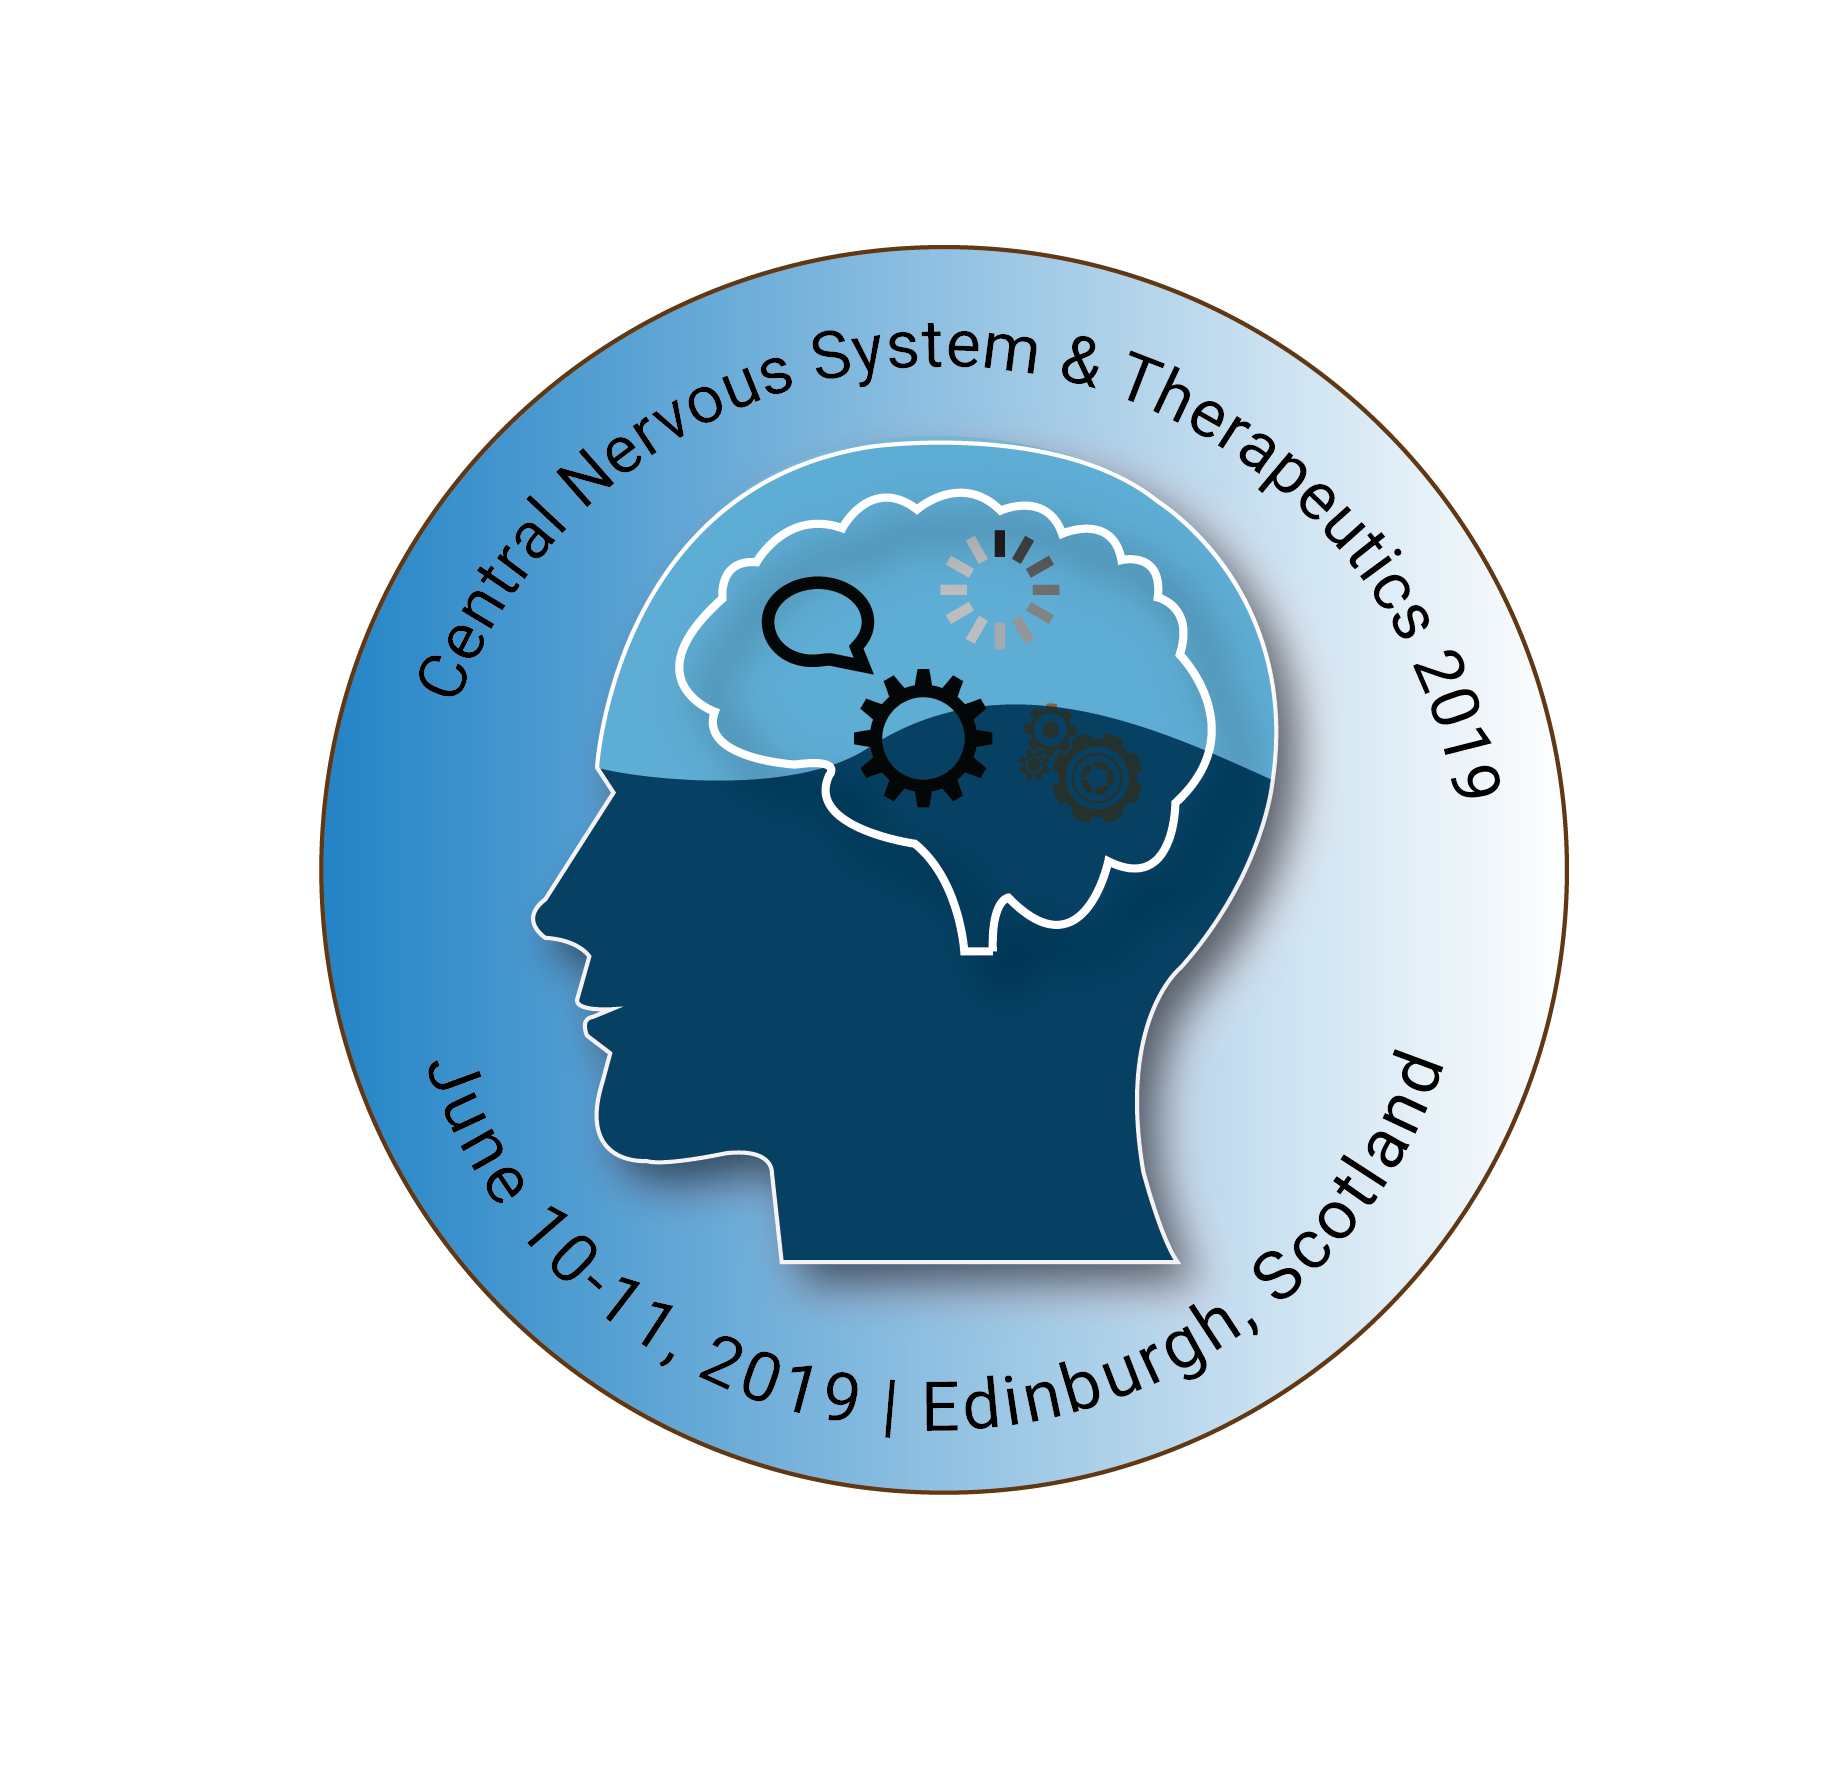 2nd International Conference on  Central Nervous System & Therapeutics